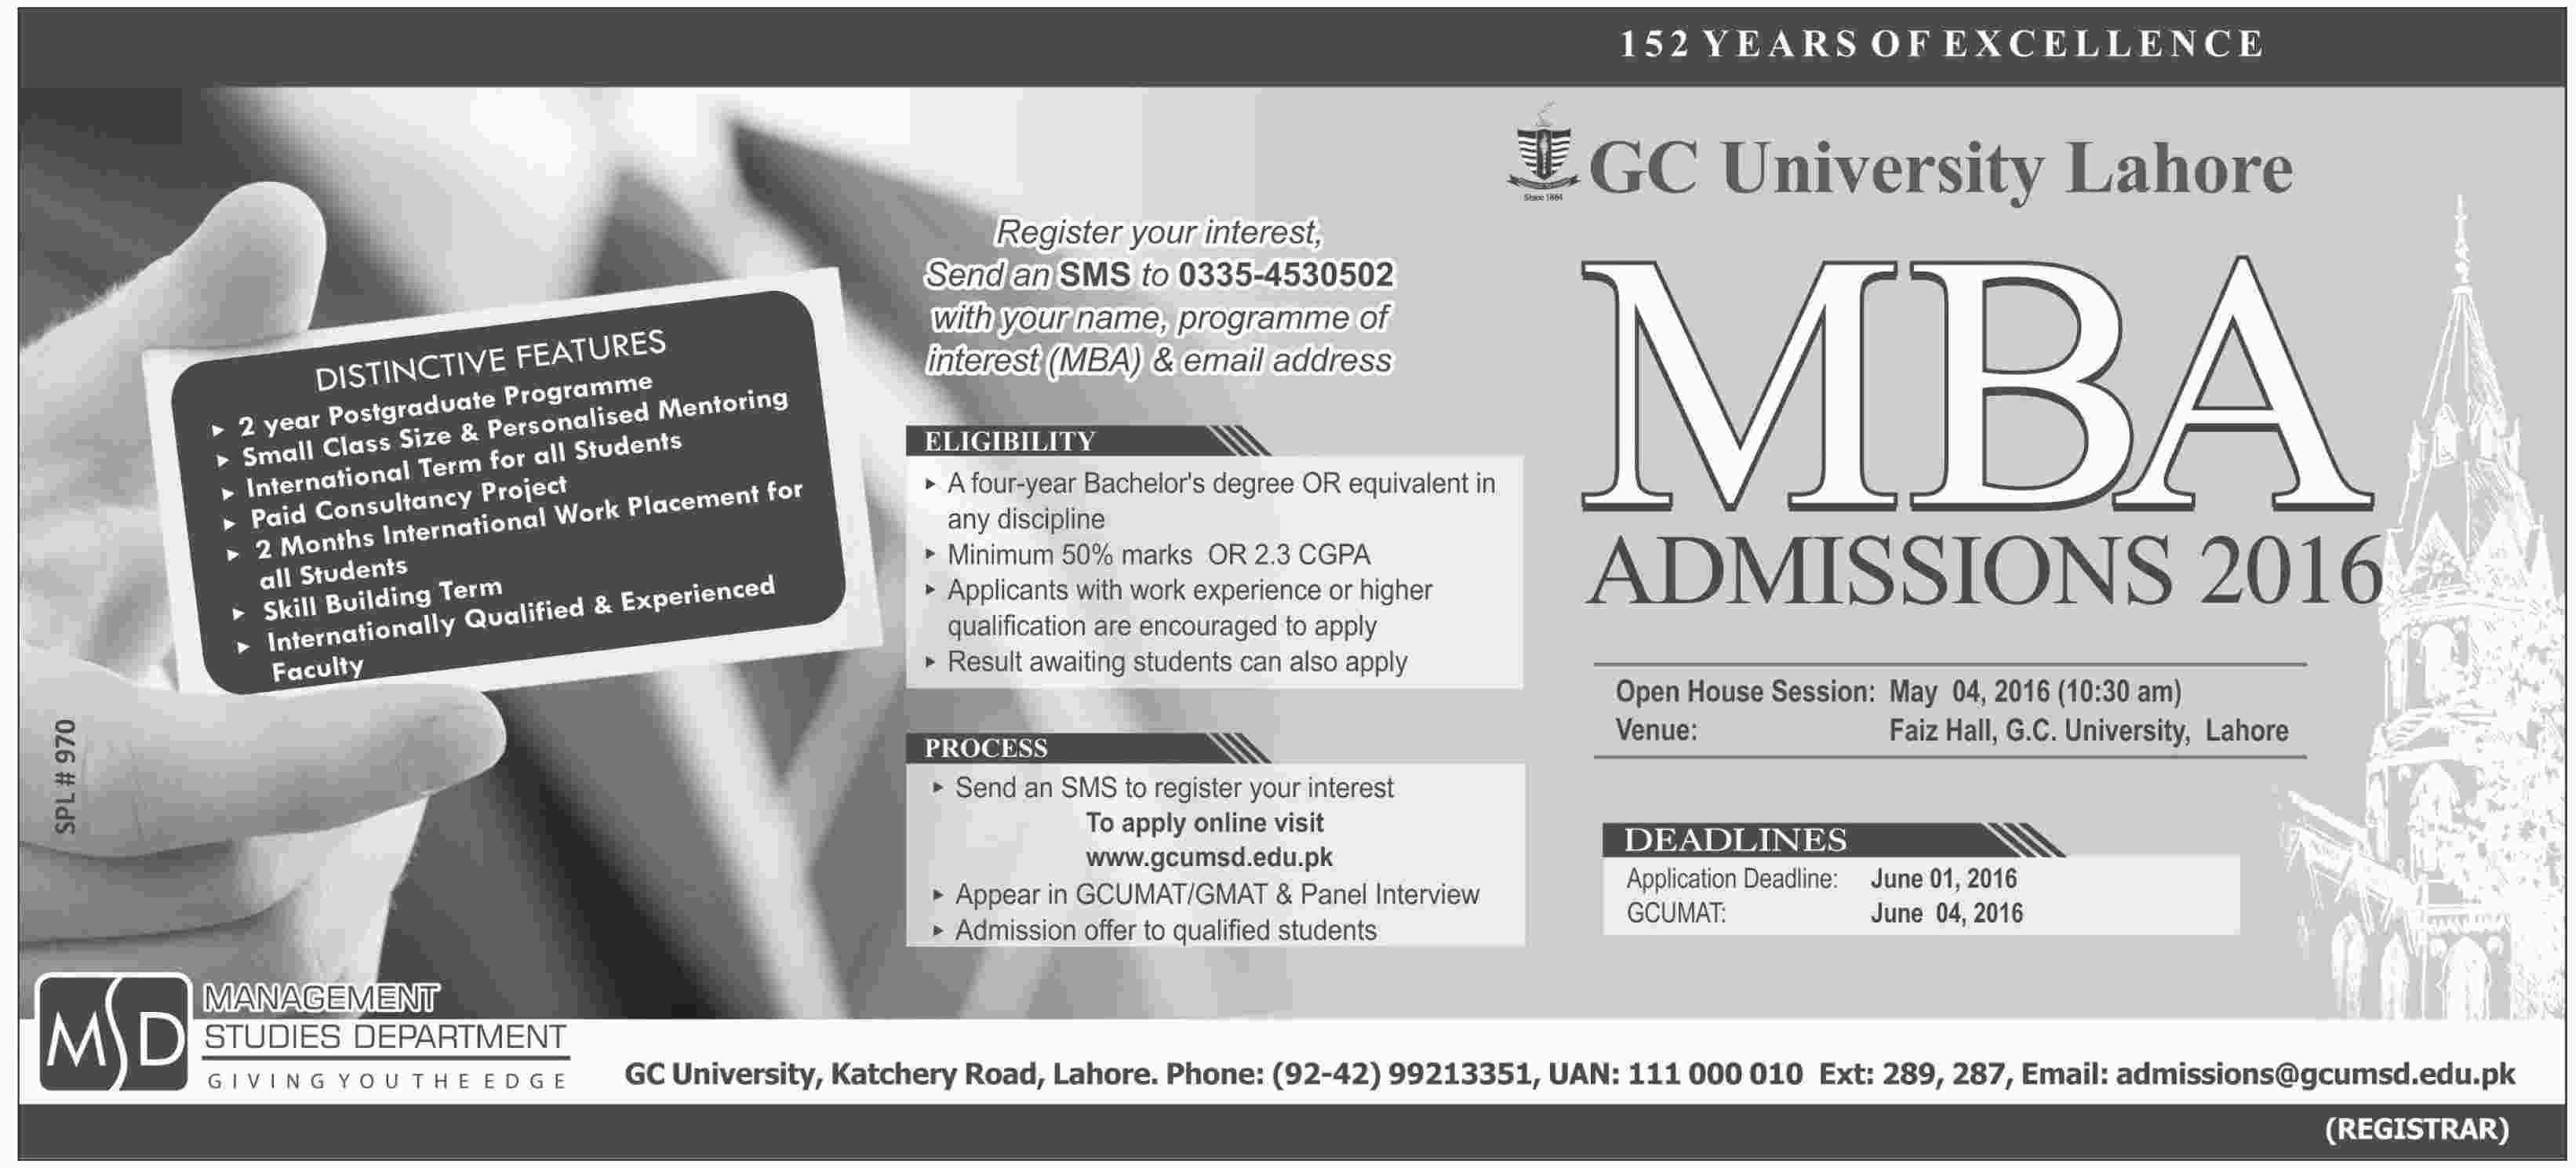 Government College University Lahore MBA Admissions 2016